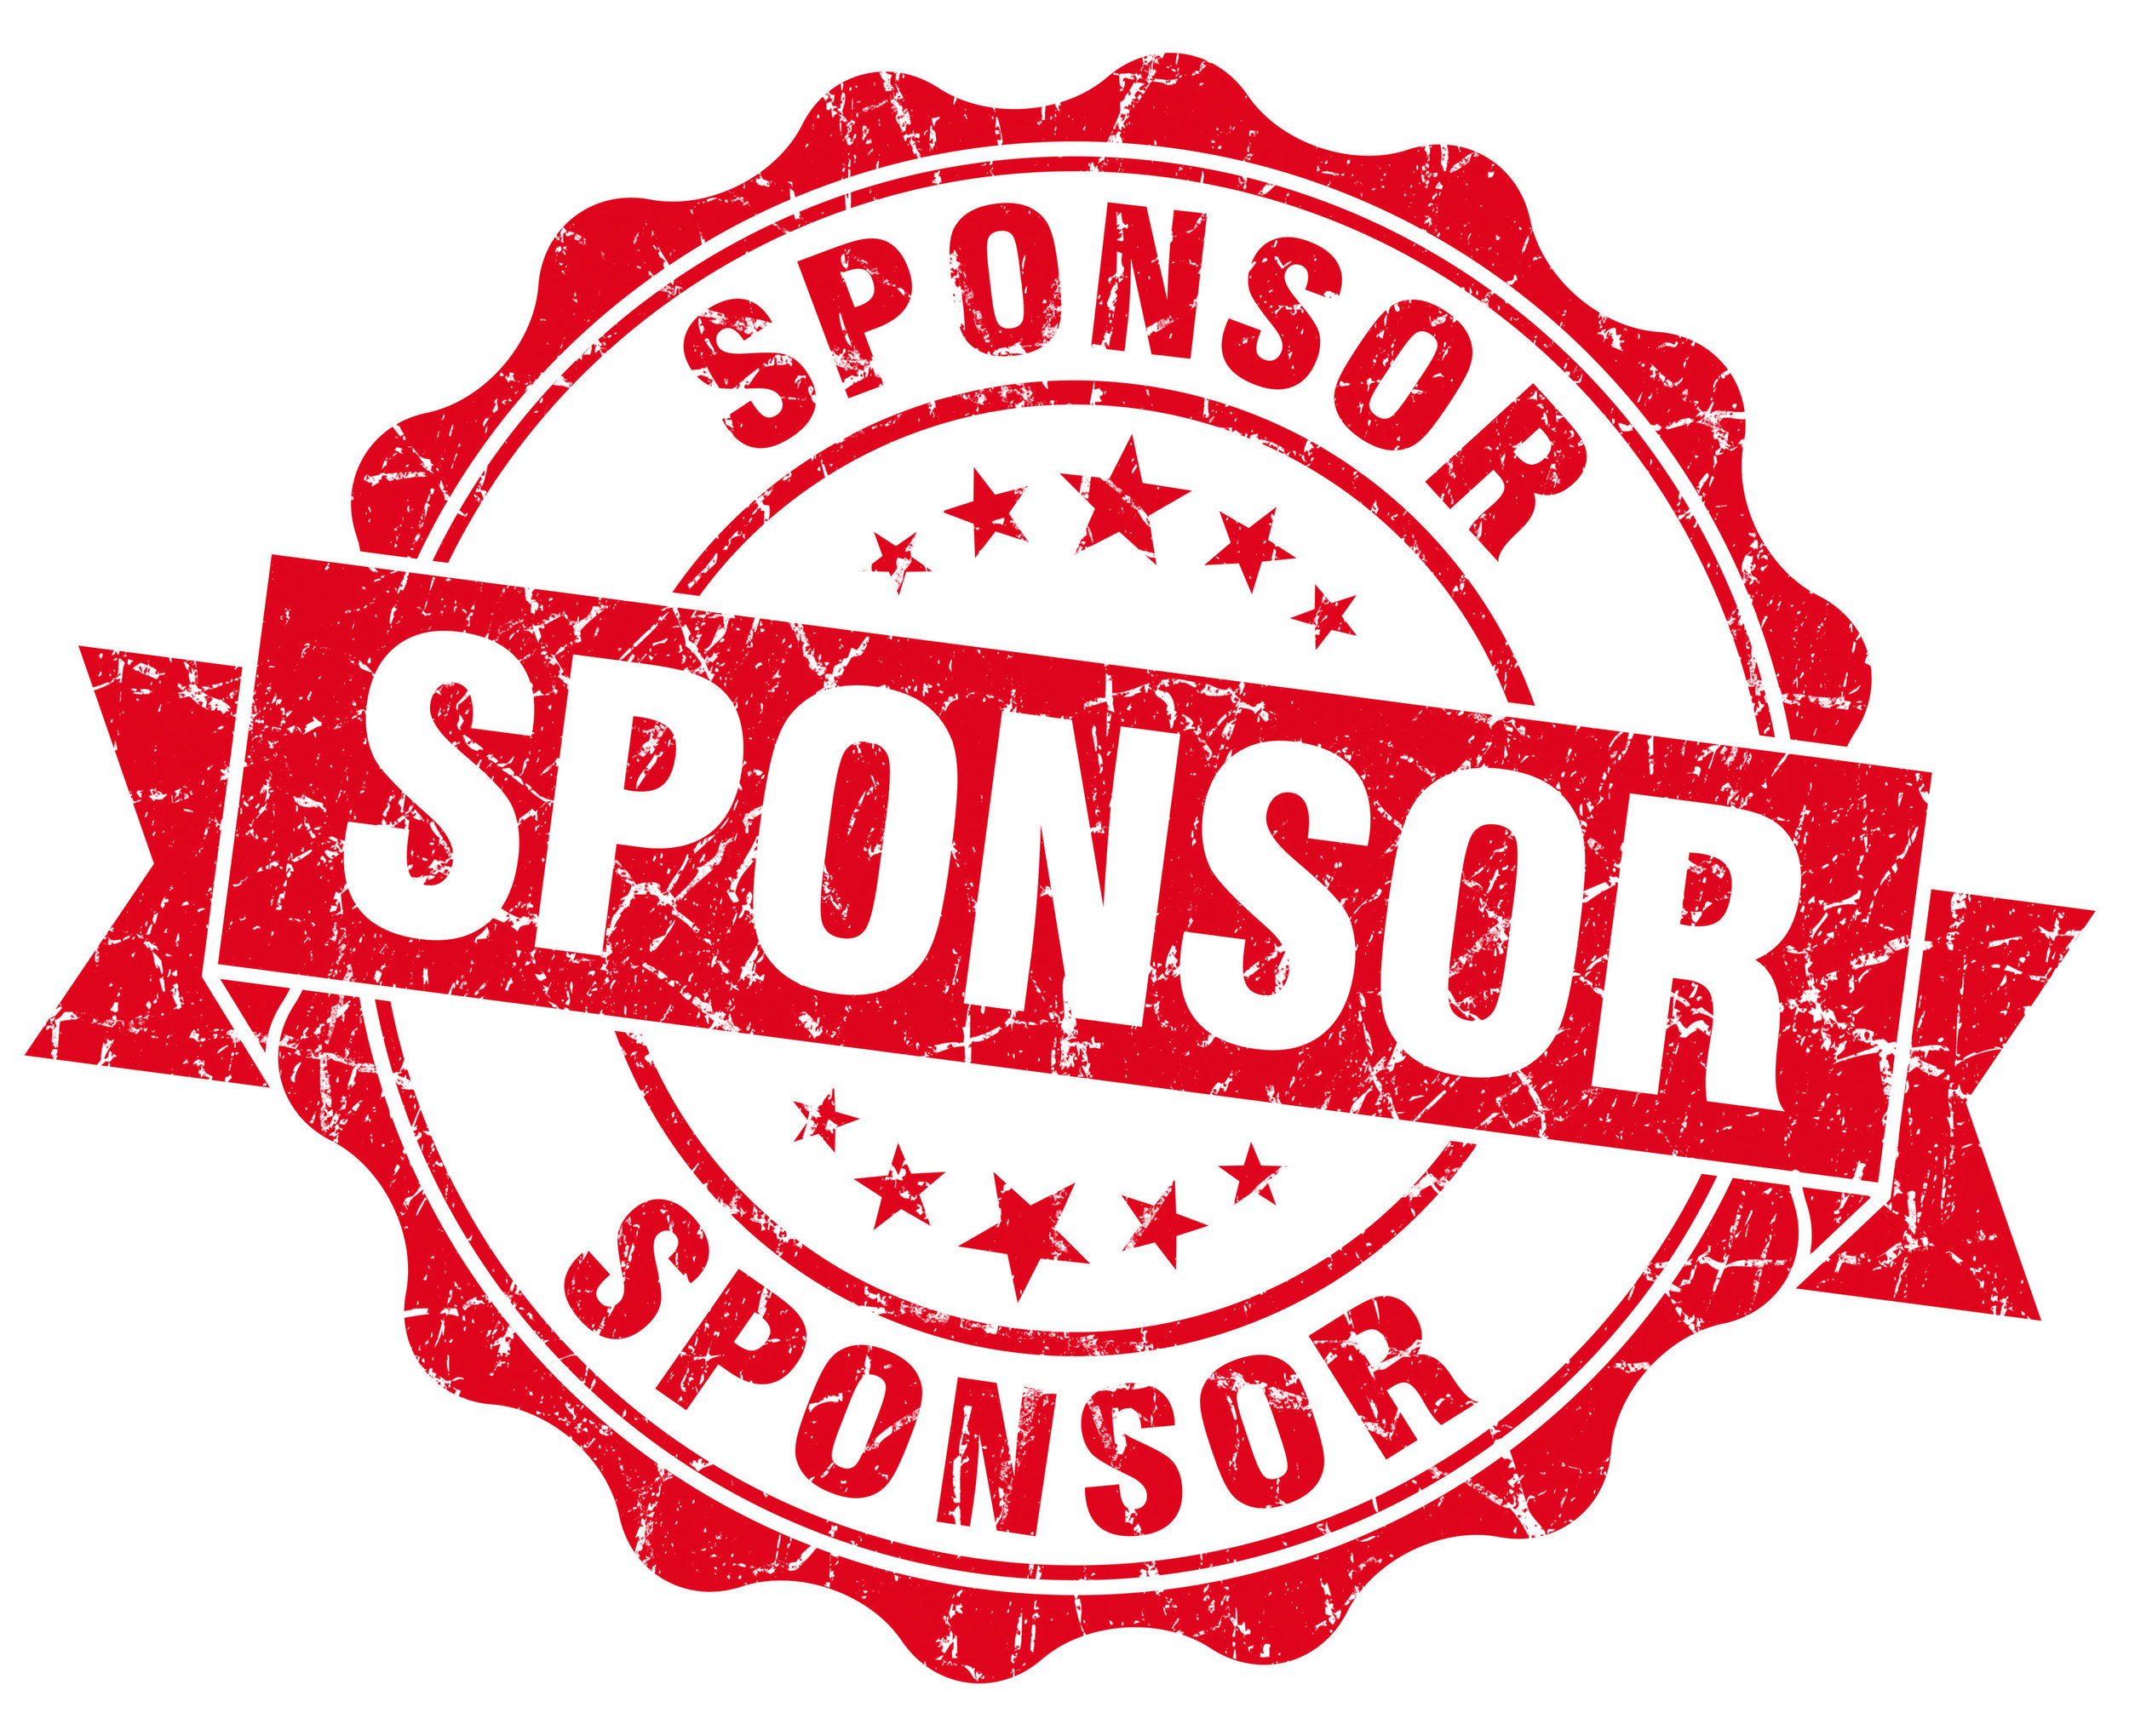 SPONSOR THE red Curb theatre! - Support the Red Curb Theatre and promote your thing to our audiences!  We'll be adding a variety of ways to become a sponsorship partner in the future, but to start you can do this:FULL TABLE TOP AD:  $100 per table for a 6 month placement, $175 per table for one entire year. We have 30 16